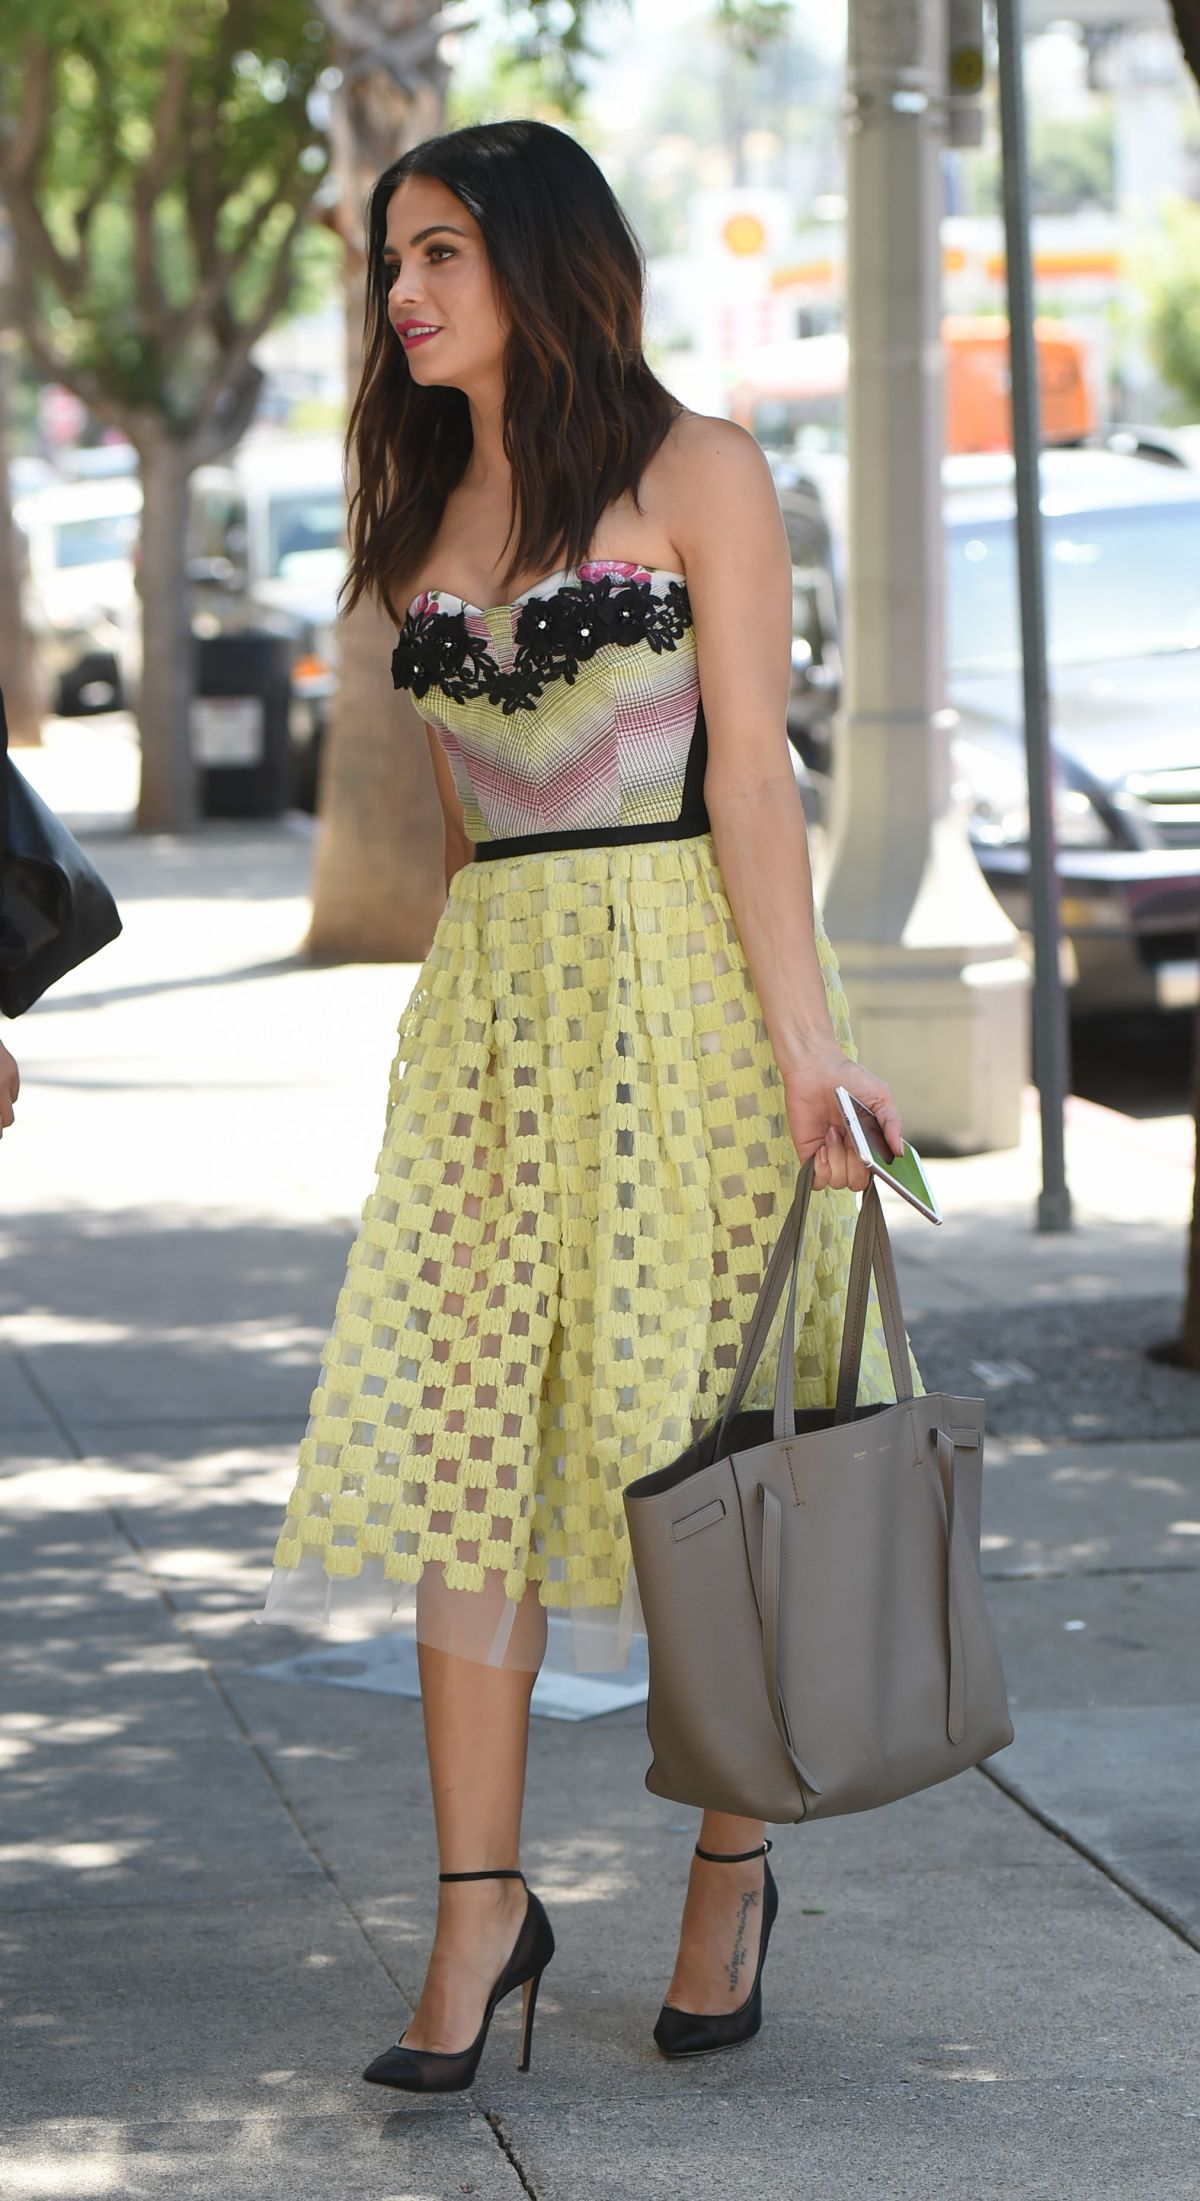 images Jenna dewan leaving joans on third in hollywood